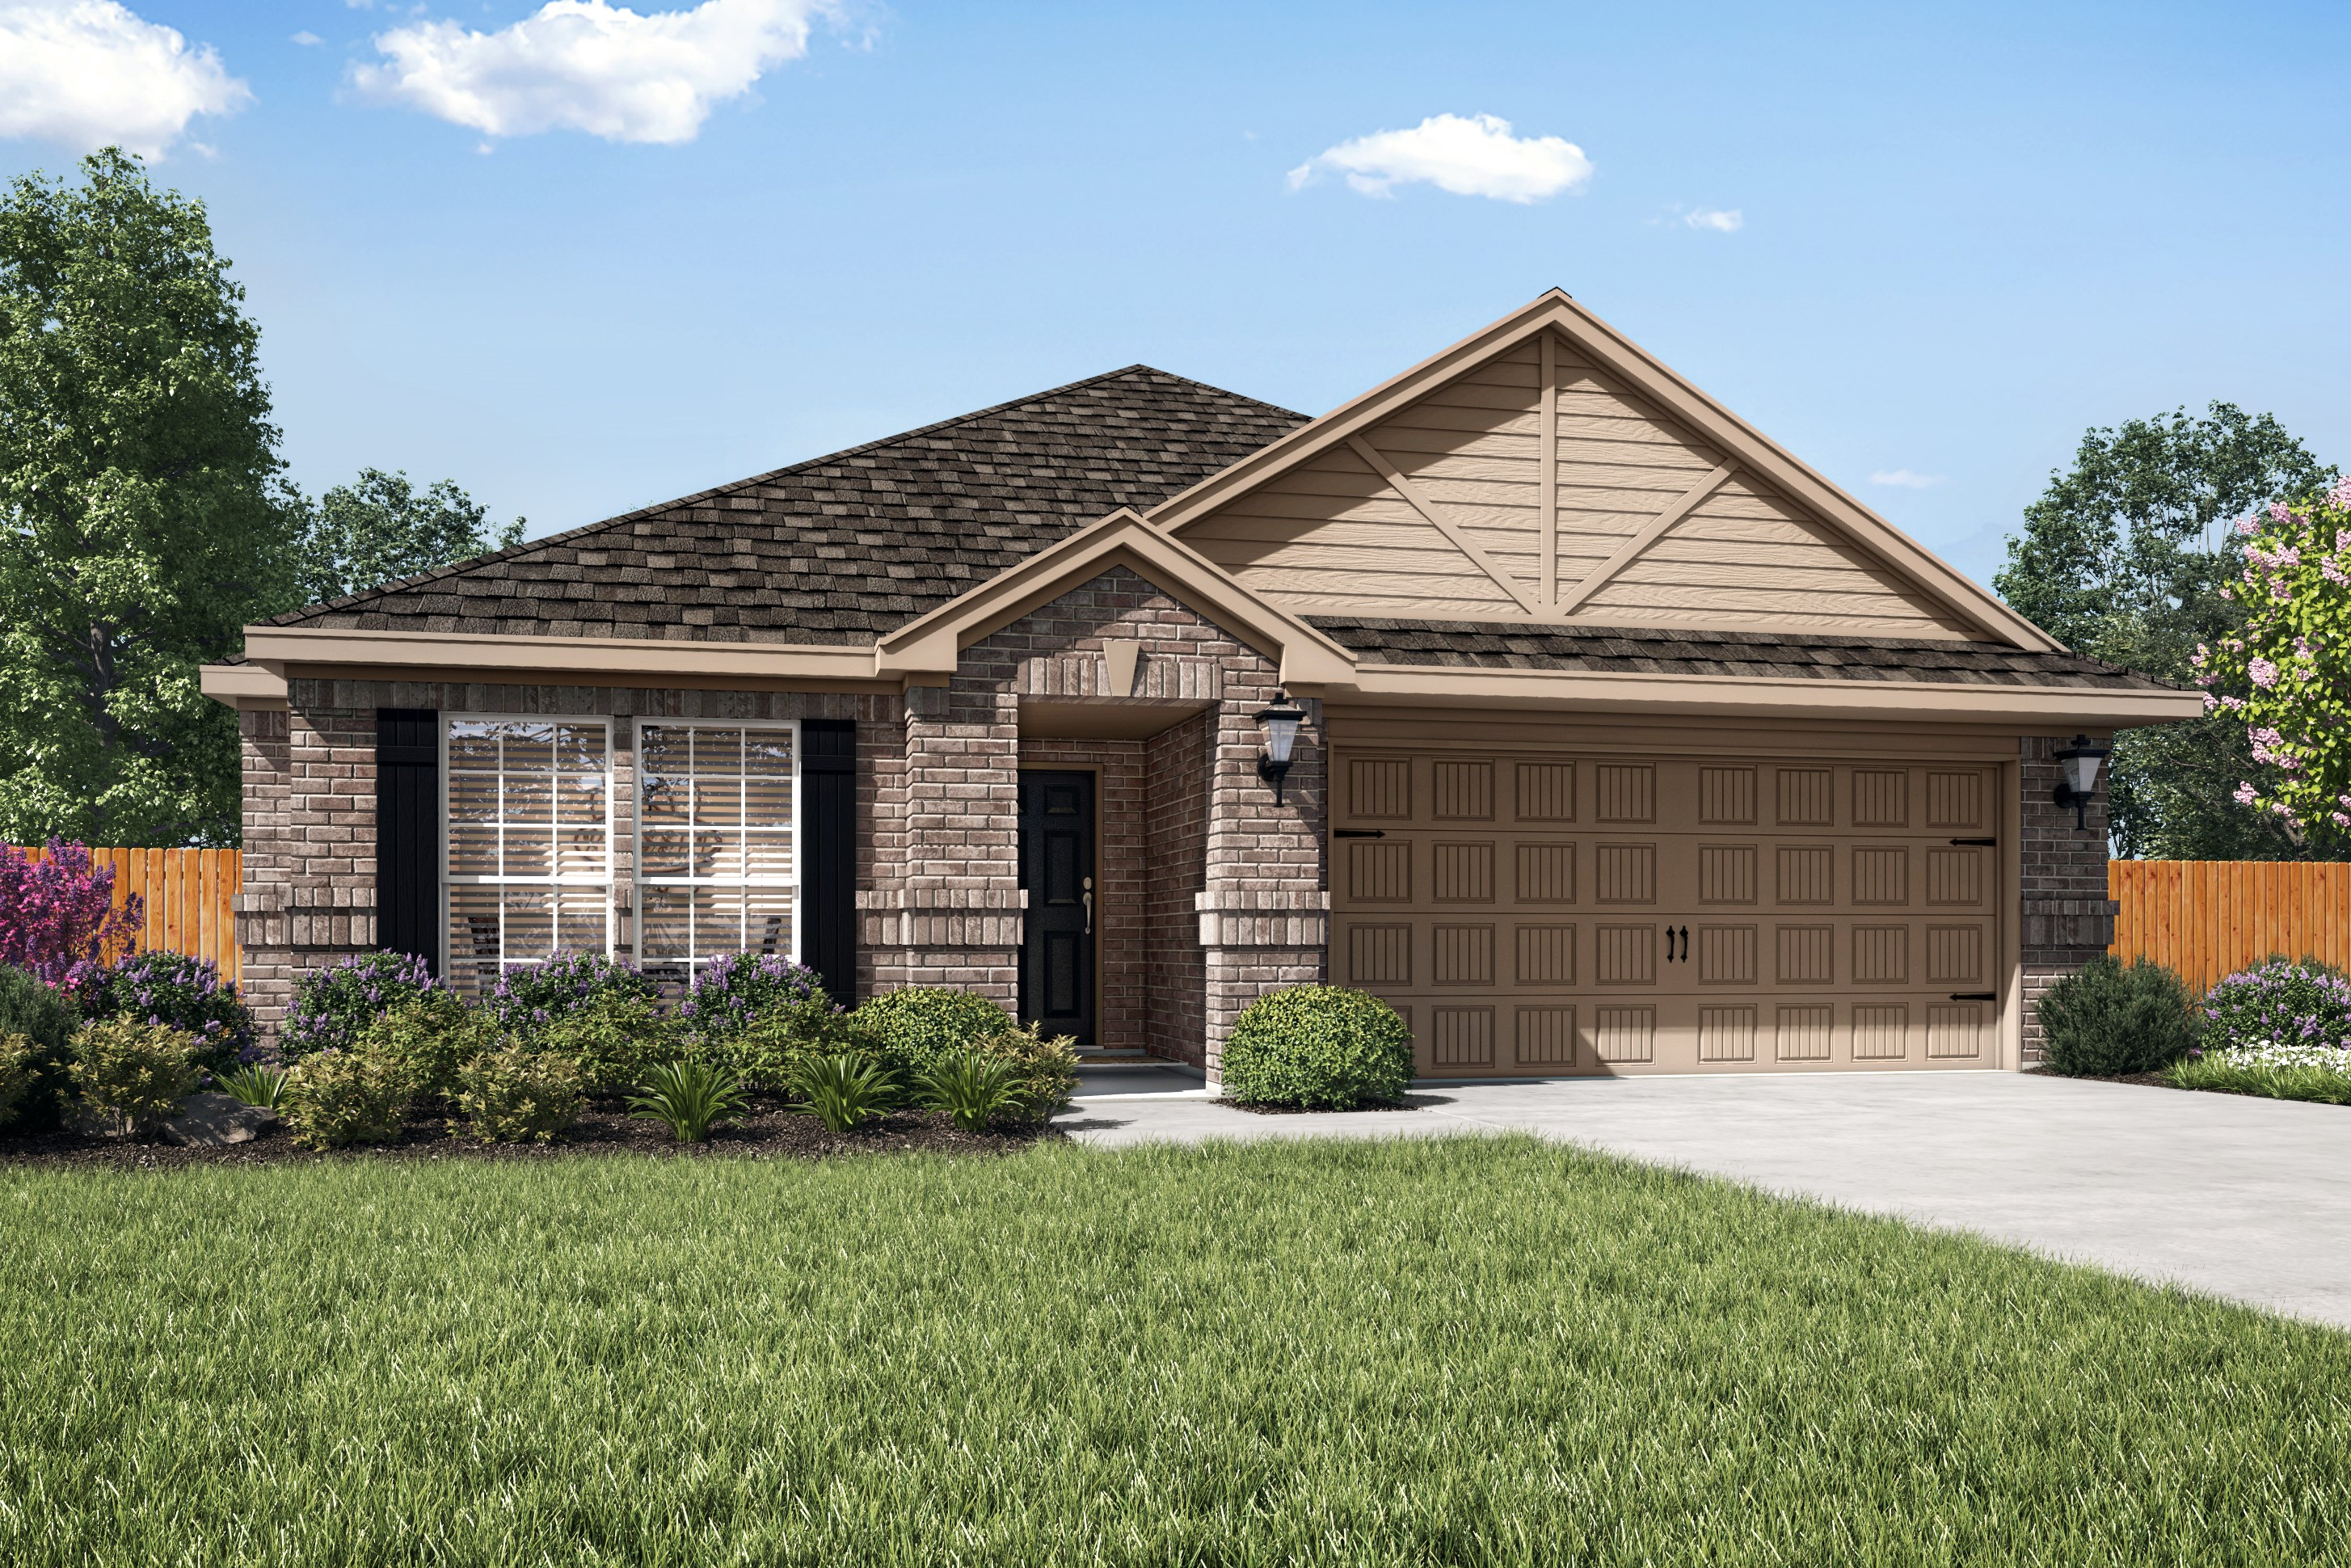 The brand-new Topeka plan is available at Willowwood!